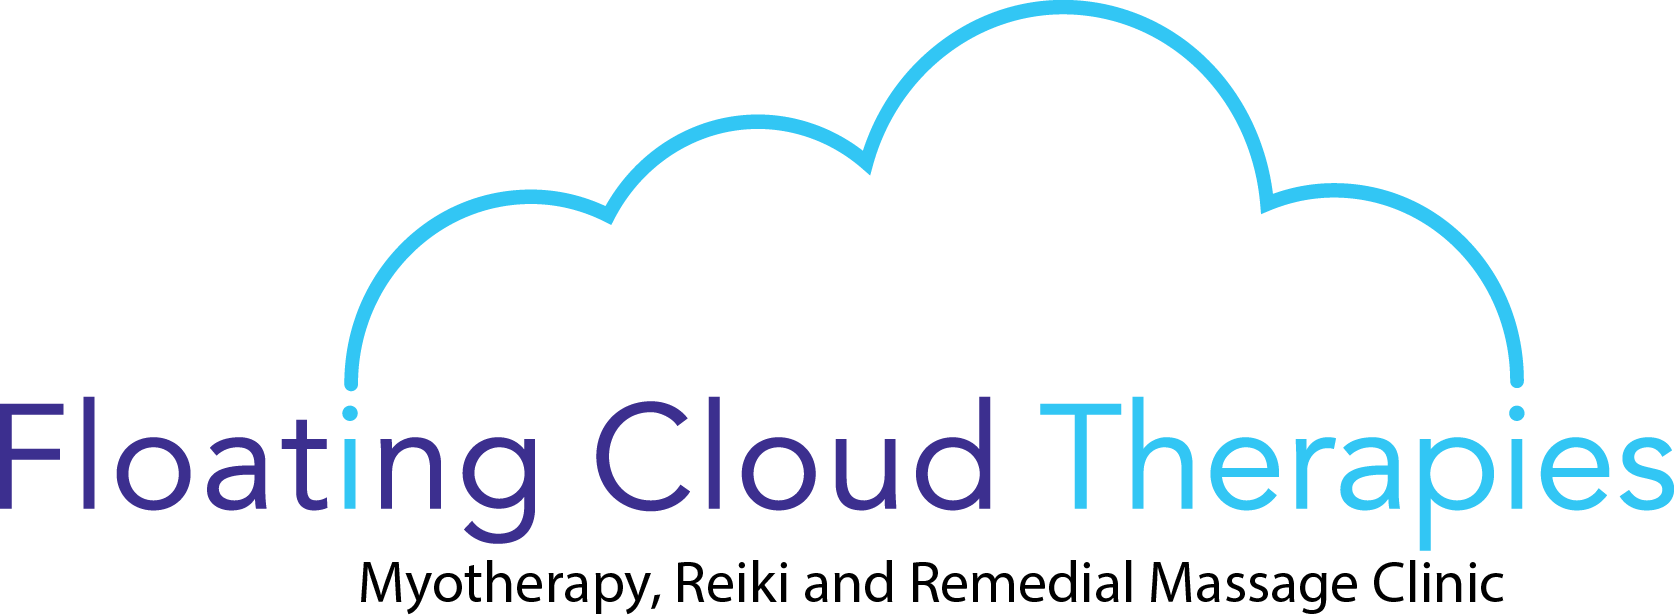 Floating Cloud Therapies